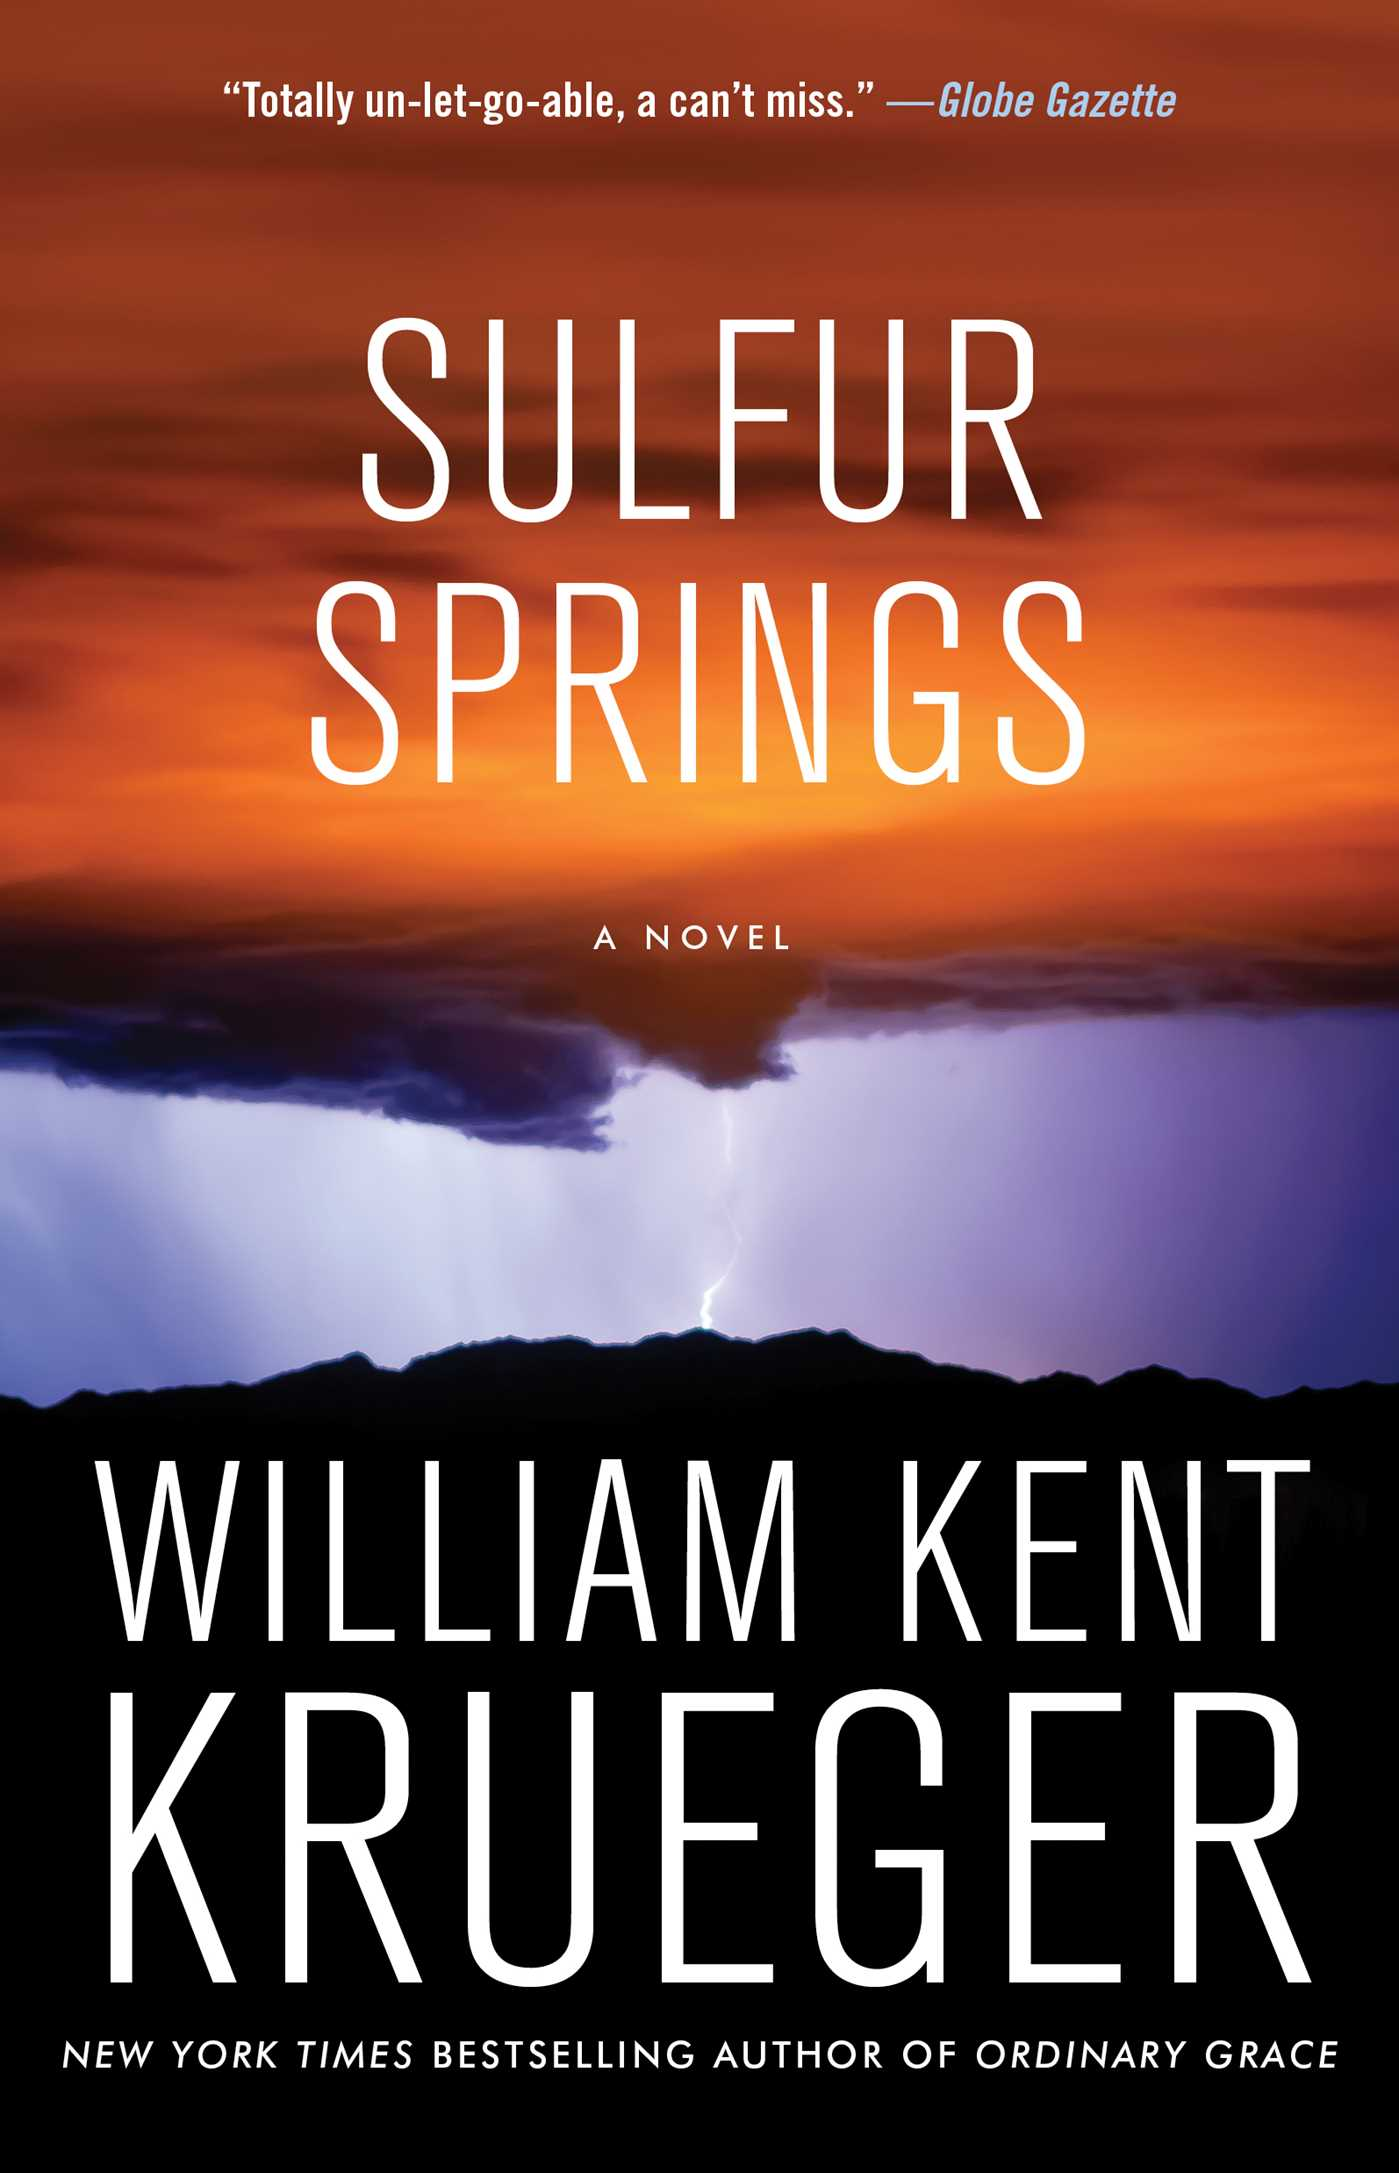 Sulfur springs 9781501147449 hr